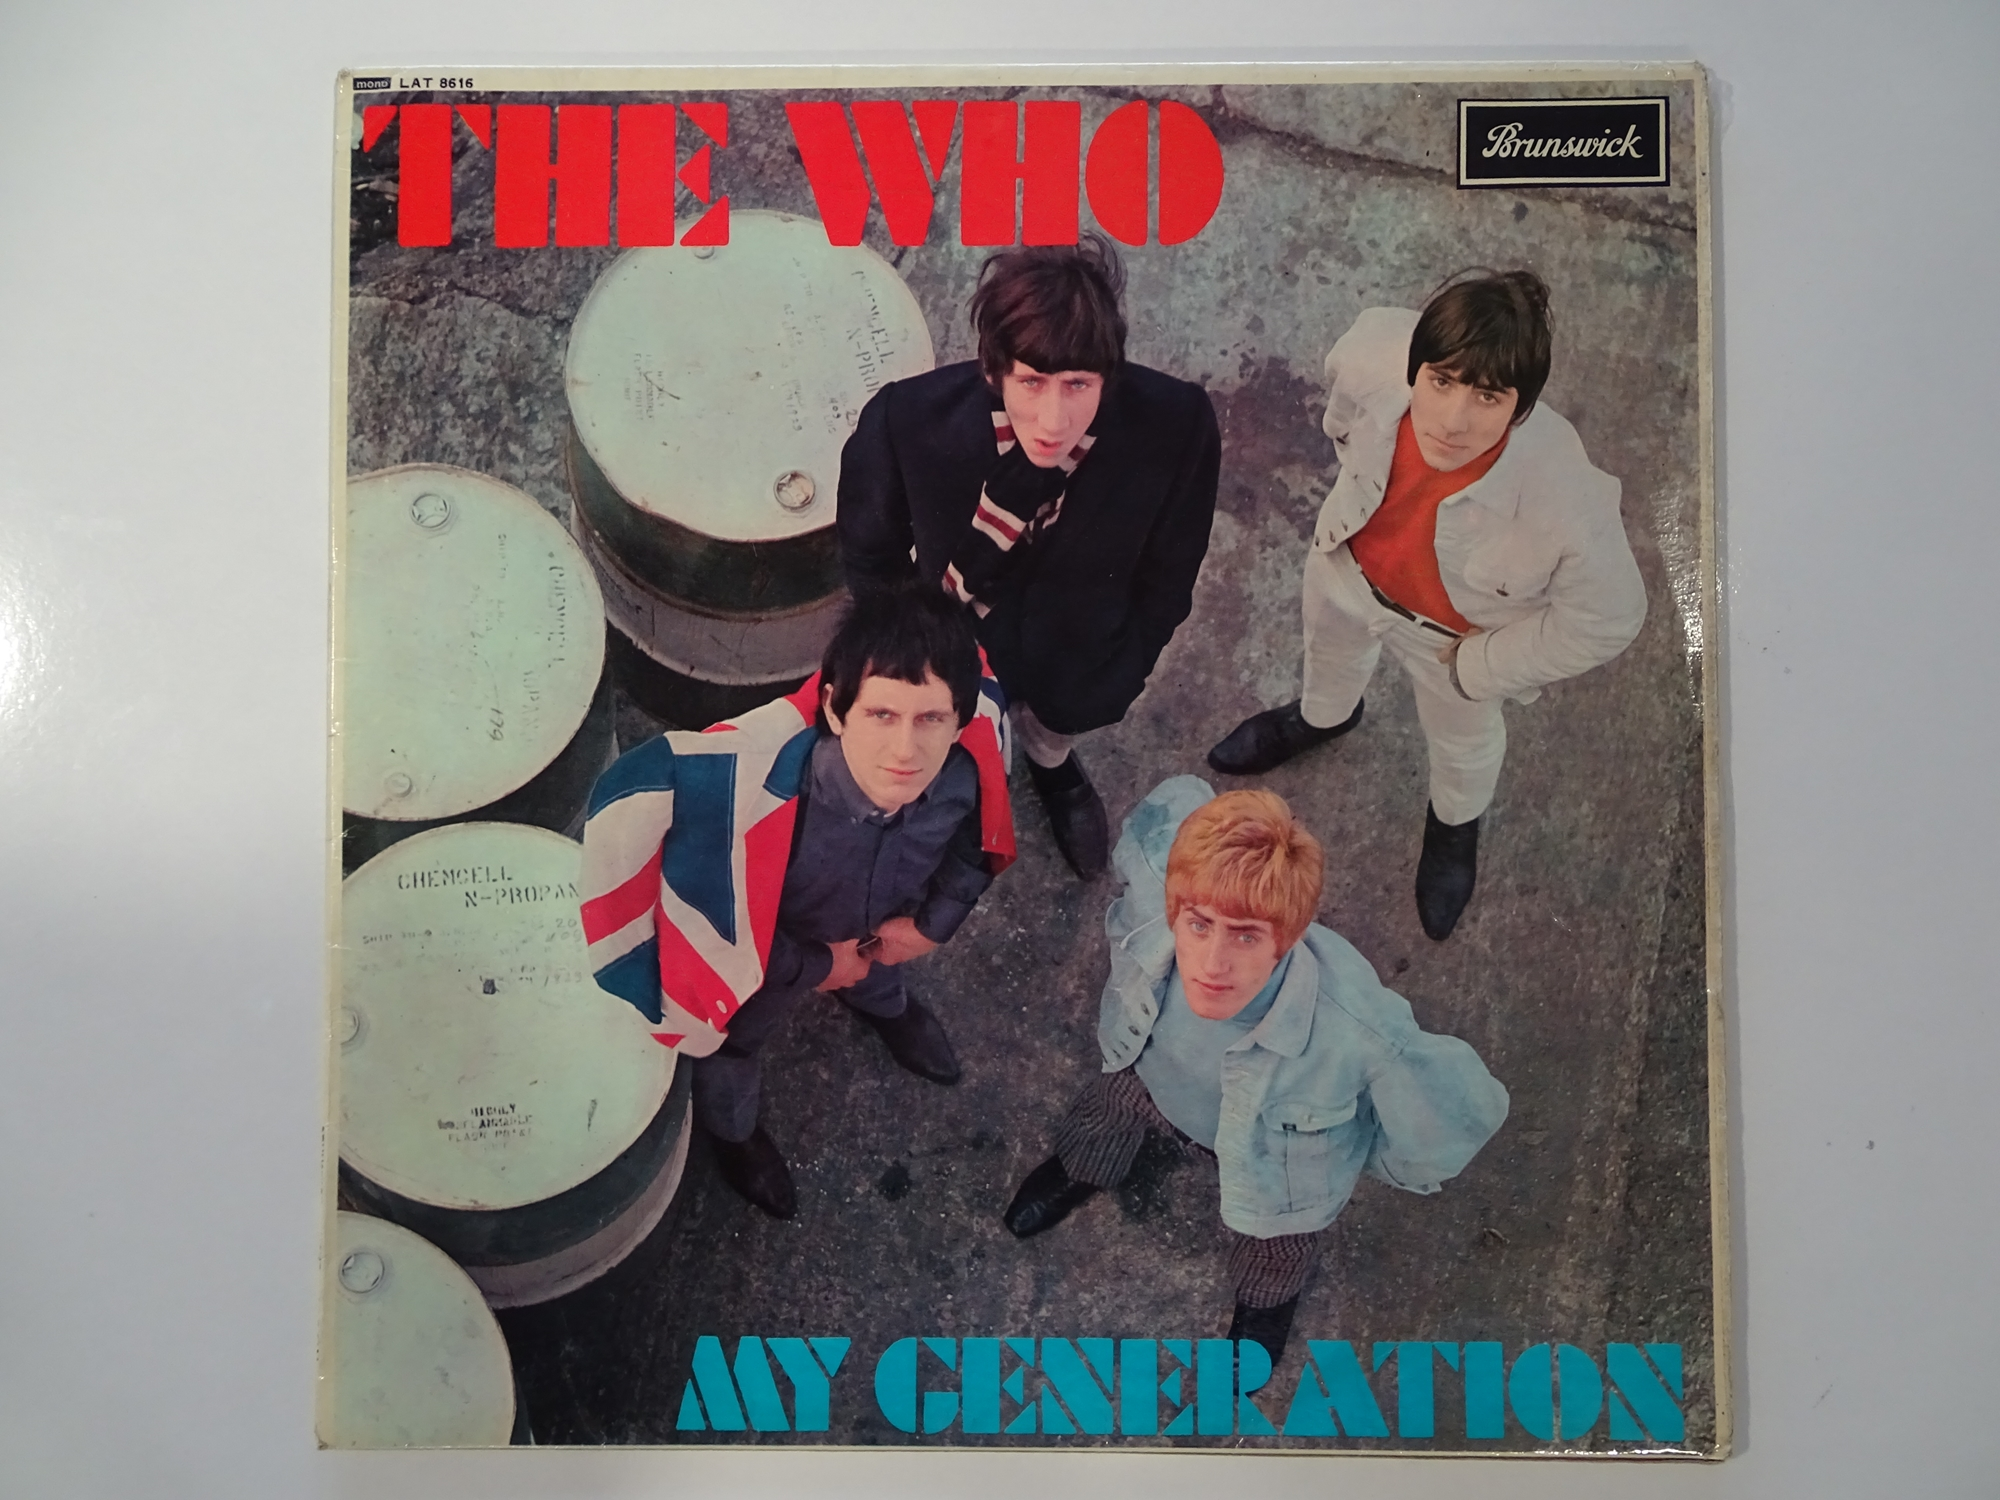 THE WHO - MY GENERATION - First pressing album signed by the four band members to the rear. An